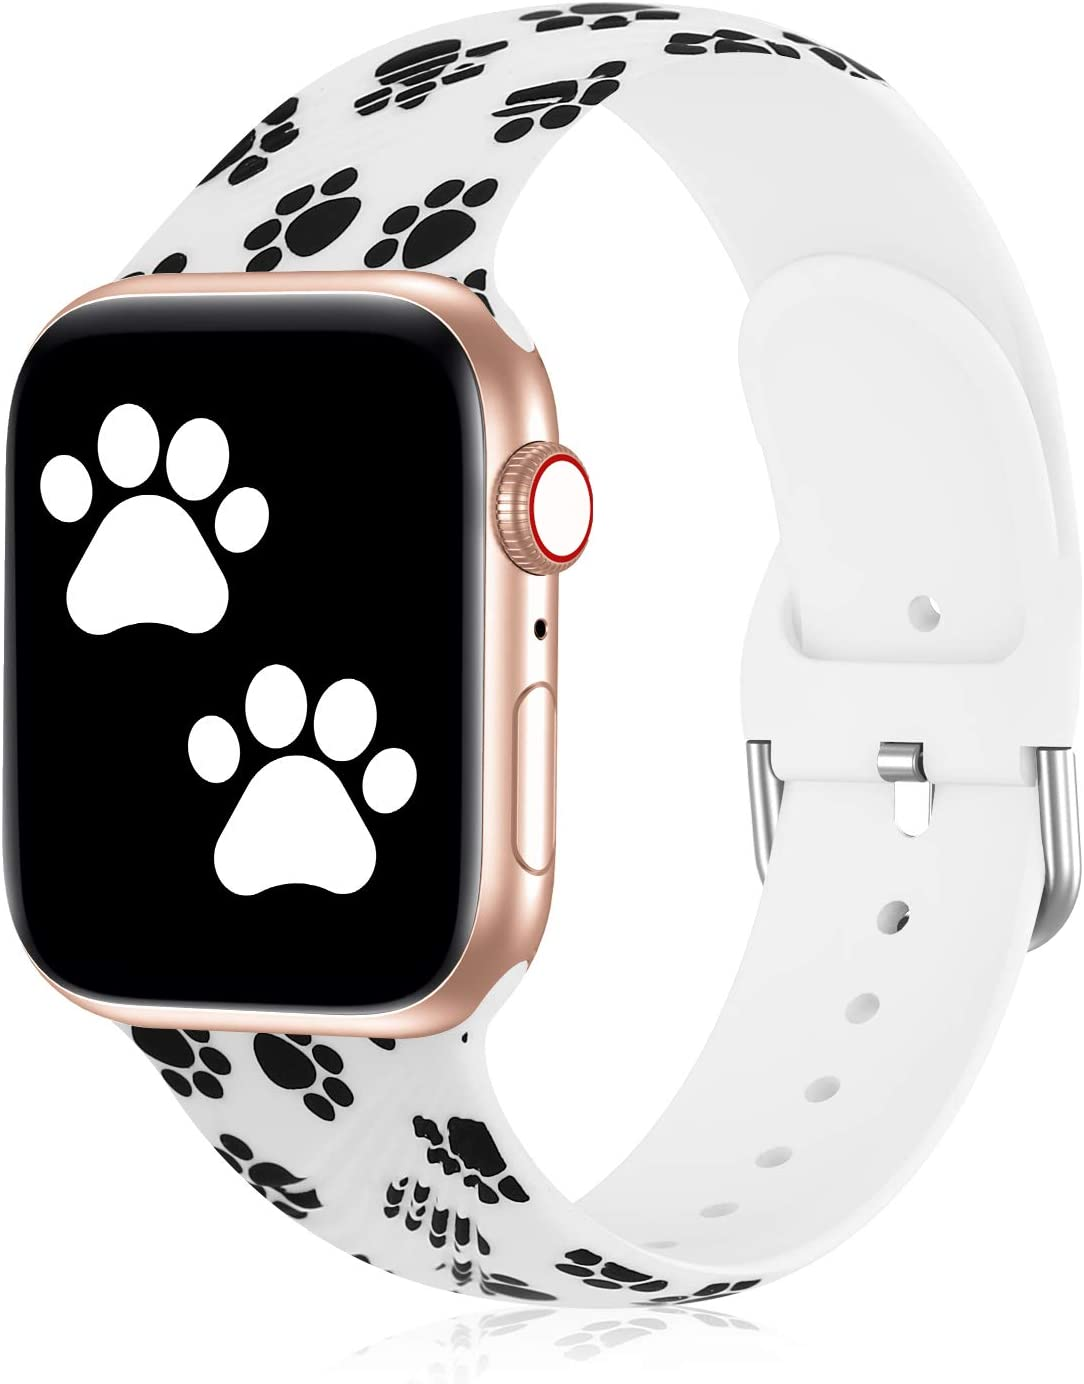 Seizehe Compatible with Apple Watch Band 38mm 40mm 42mm 44mm Series 3 Series 5, Silicone Floral Pattern iWatch Bands 38mm 40mm 42mm 44mm Womens Compatible for iWatch SE Series 6 5 4 3 2 1